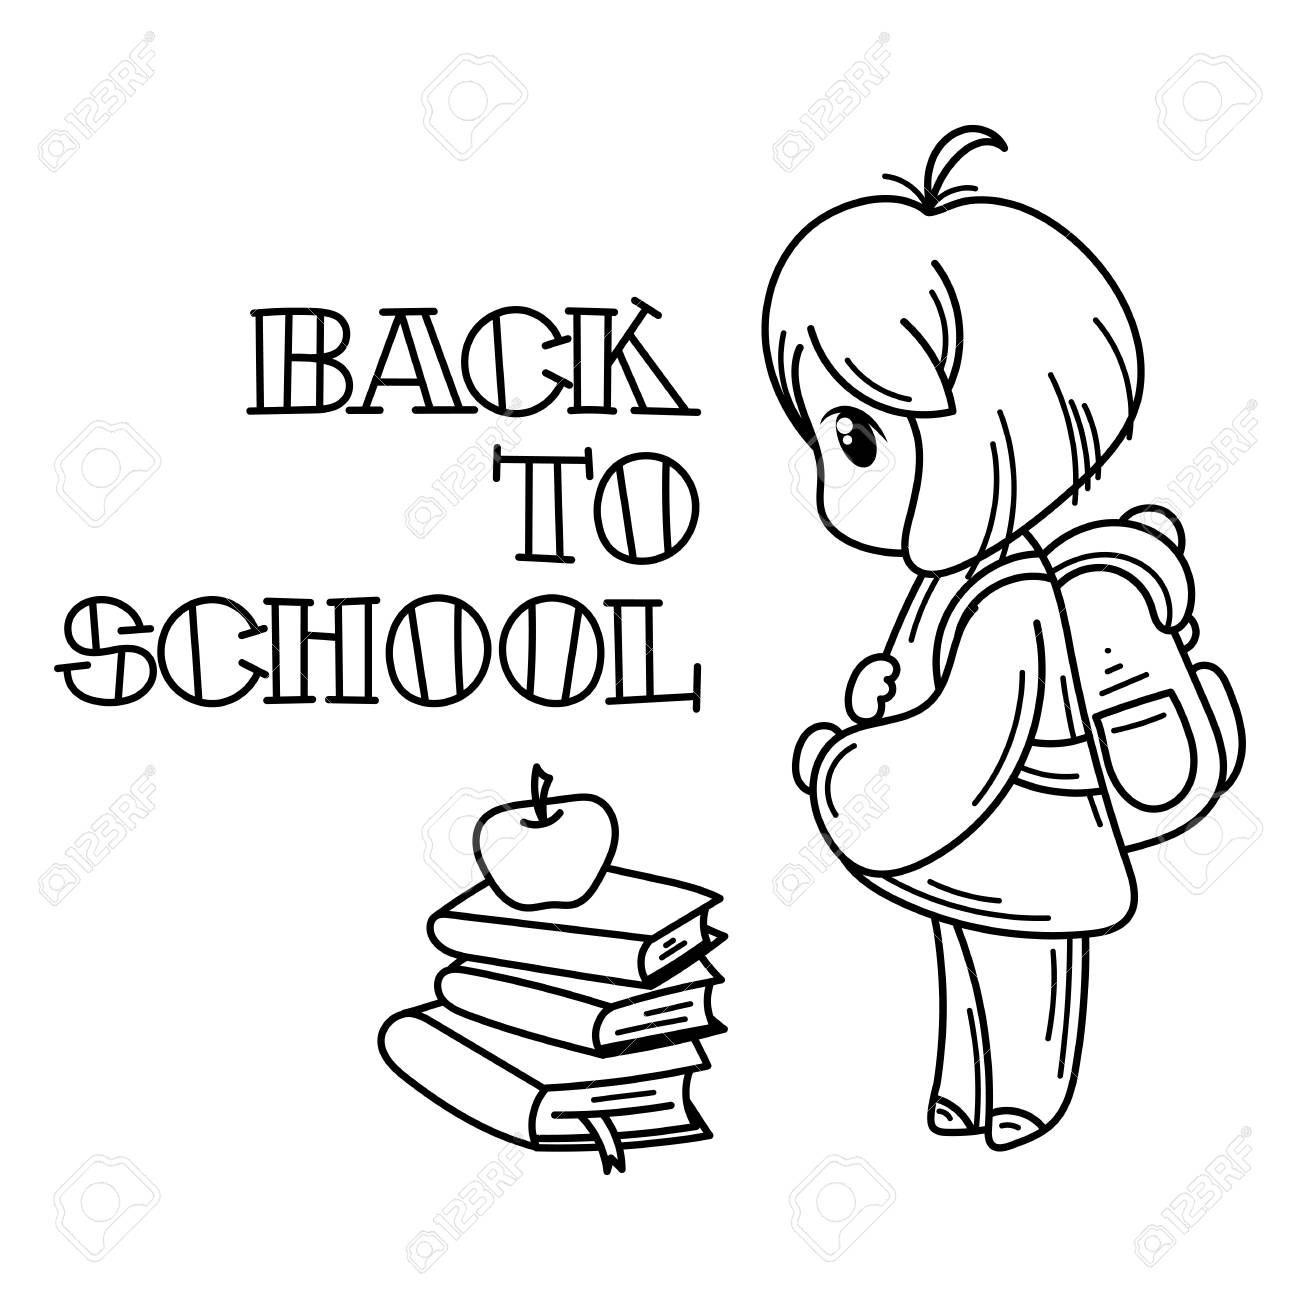 Back To School | Free Coloring Pages | crayola.com | 1300x1300